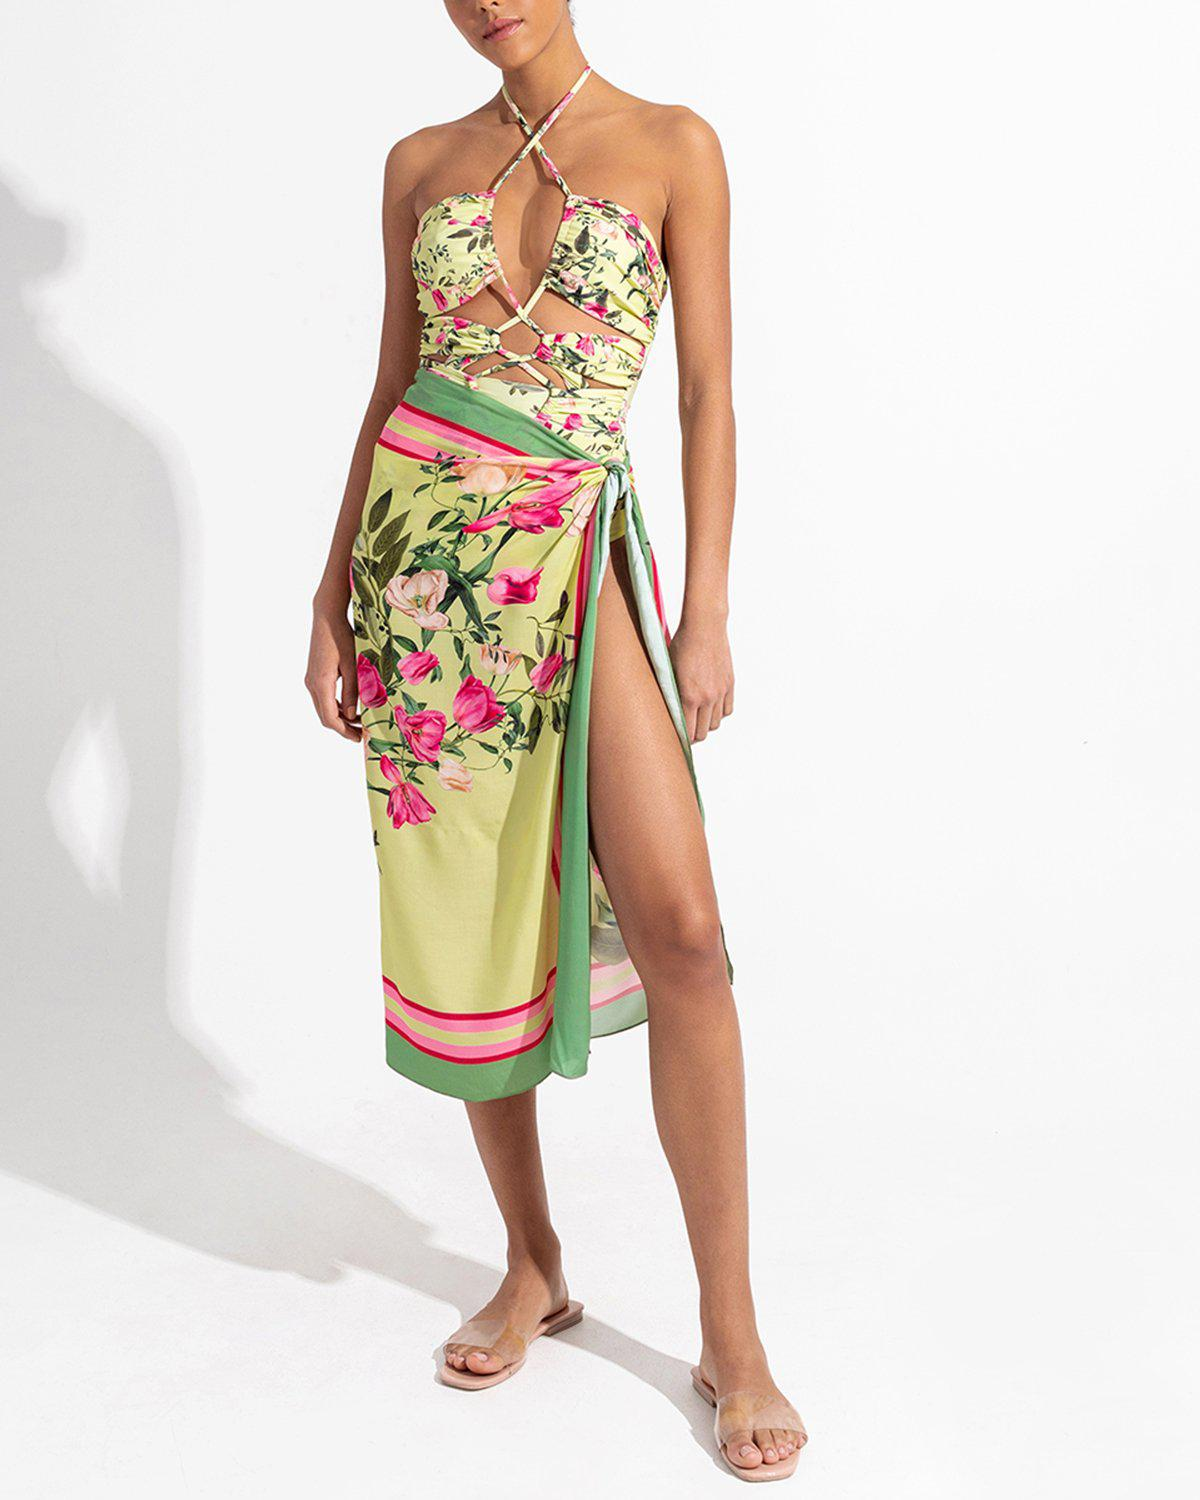 Tula Laceup One Piece 5